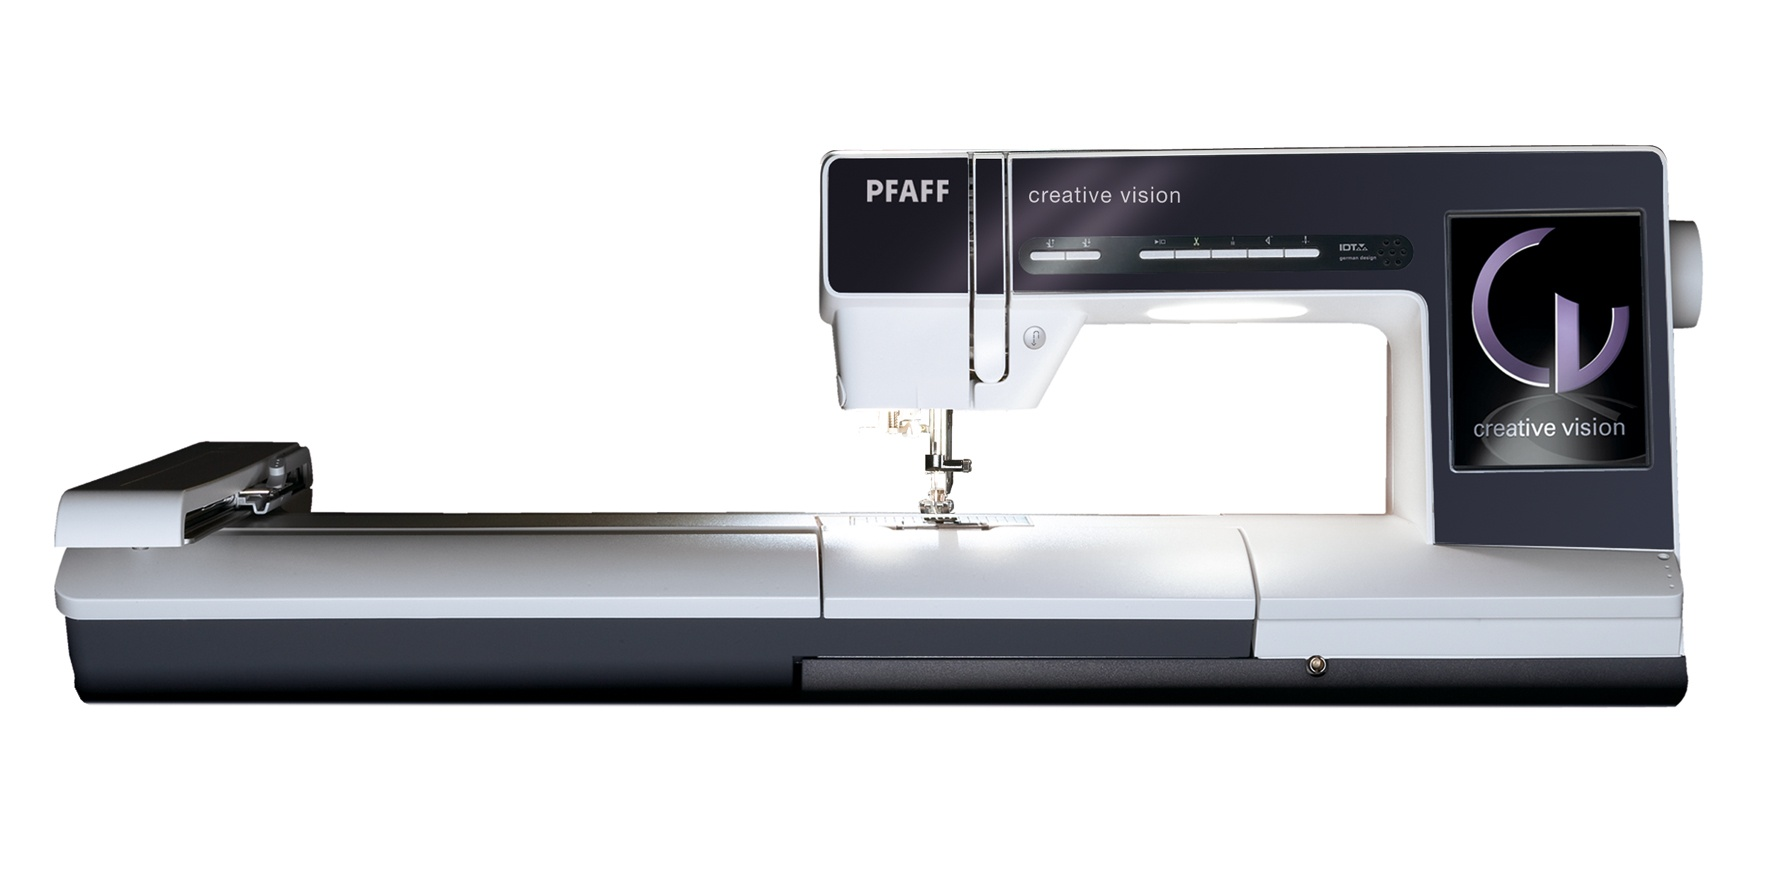 Pfaff - Embroidery Machine